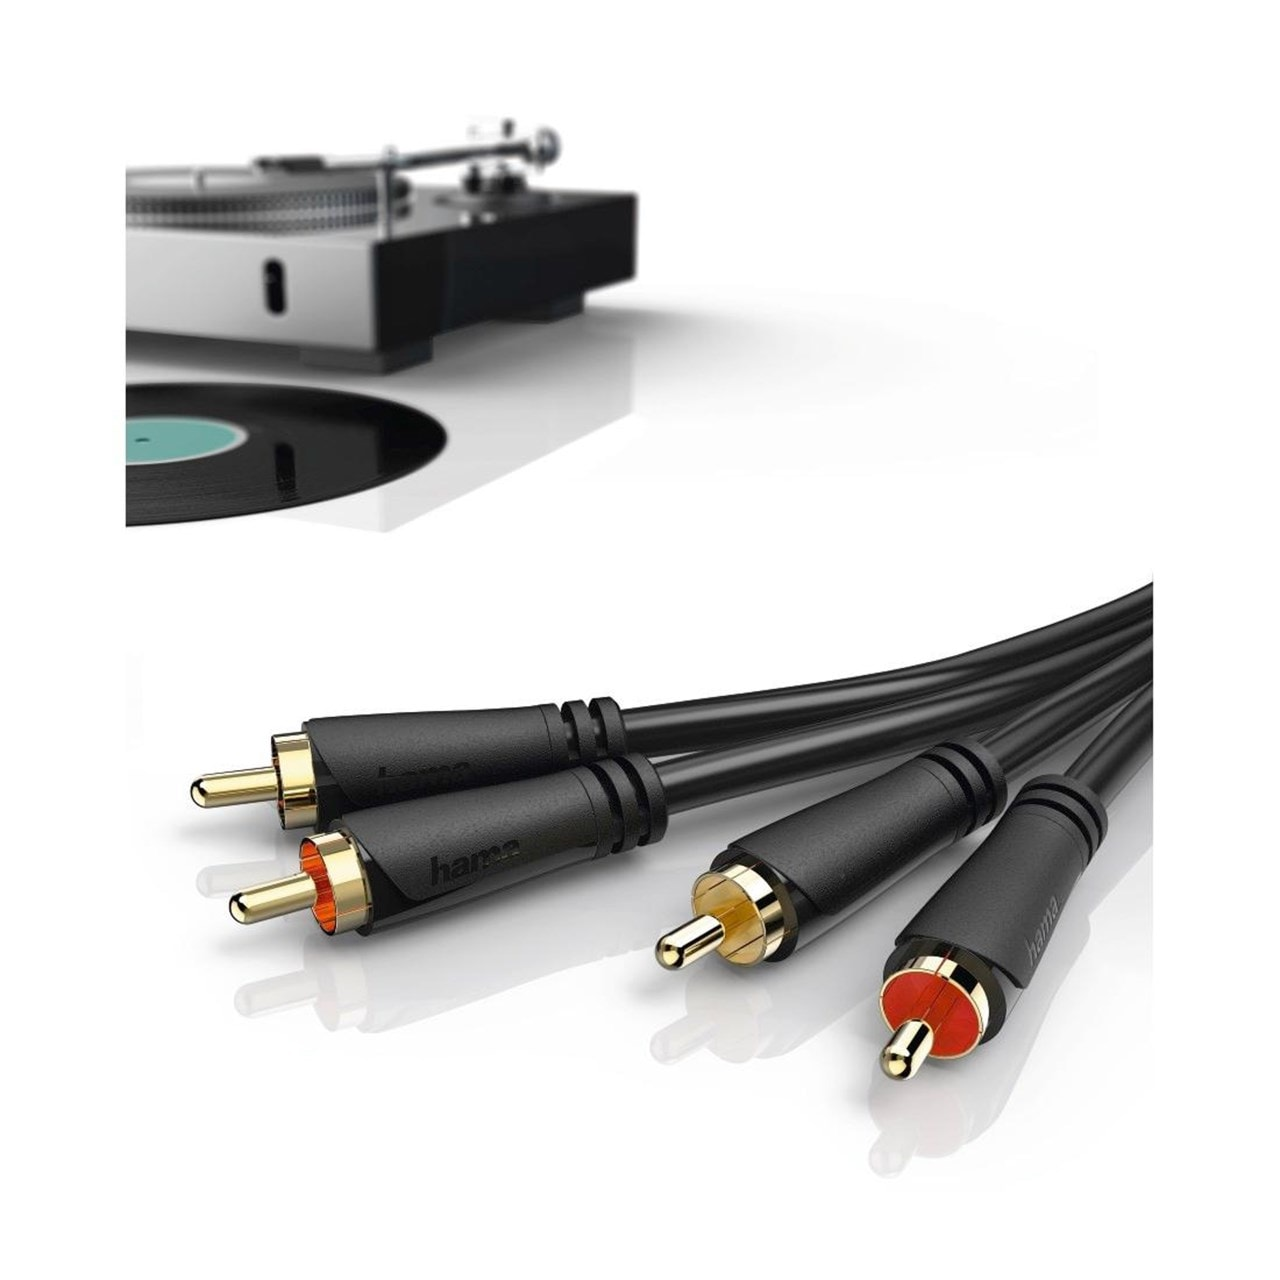 Hama RCA To RCA 1.5m Cable - 2